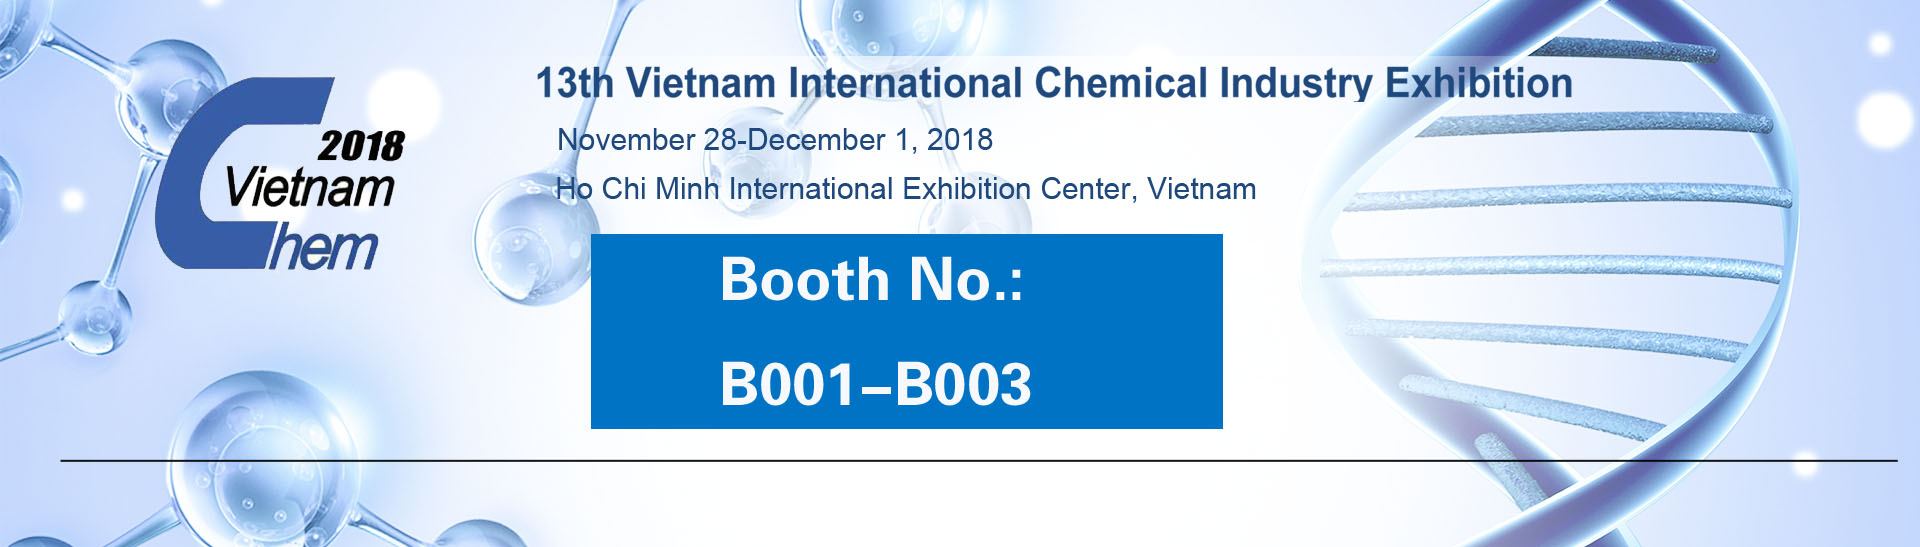 13th Vietnam International Chemical Industry Exhibition